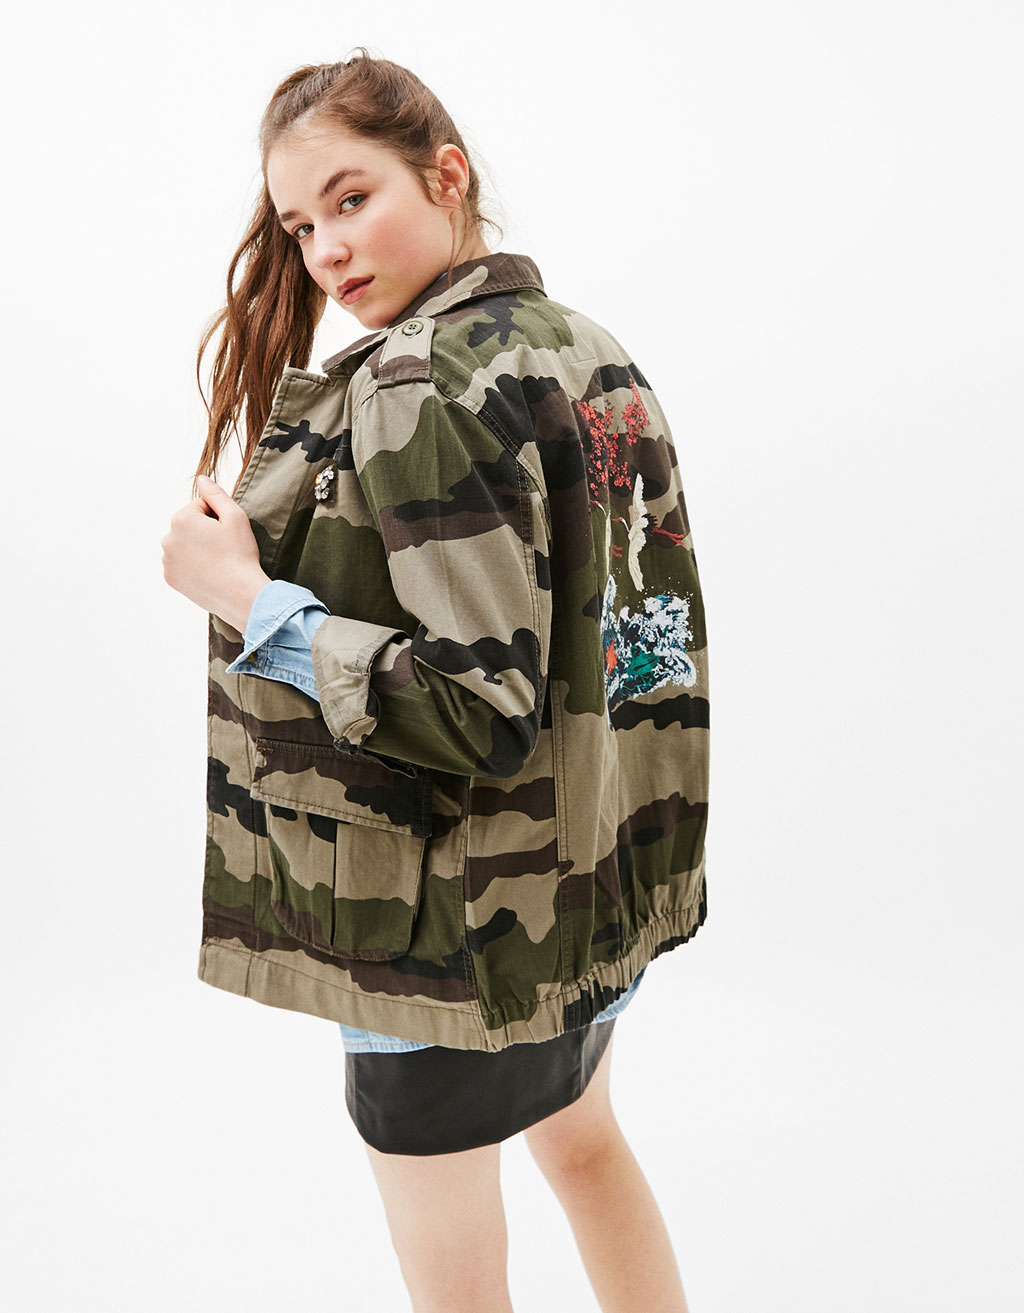 Military Jacke Damen Camouflage Superjacken 2018